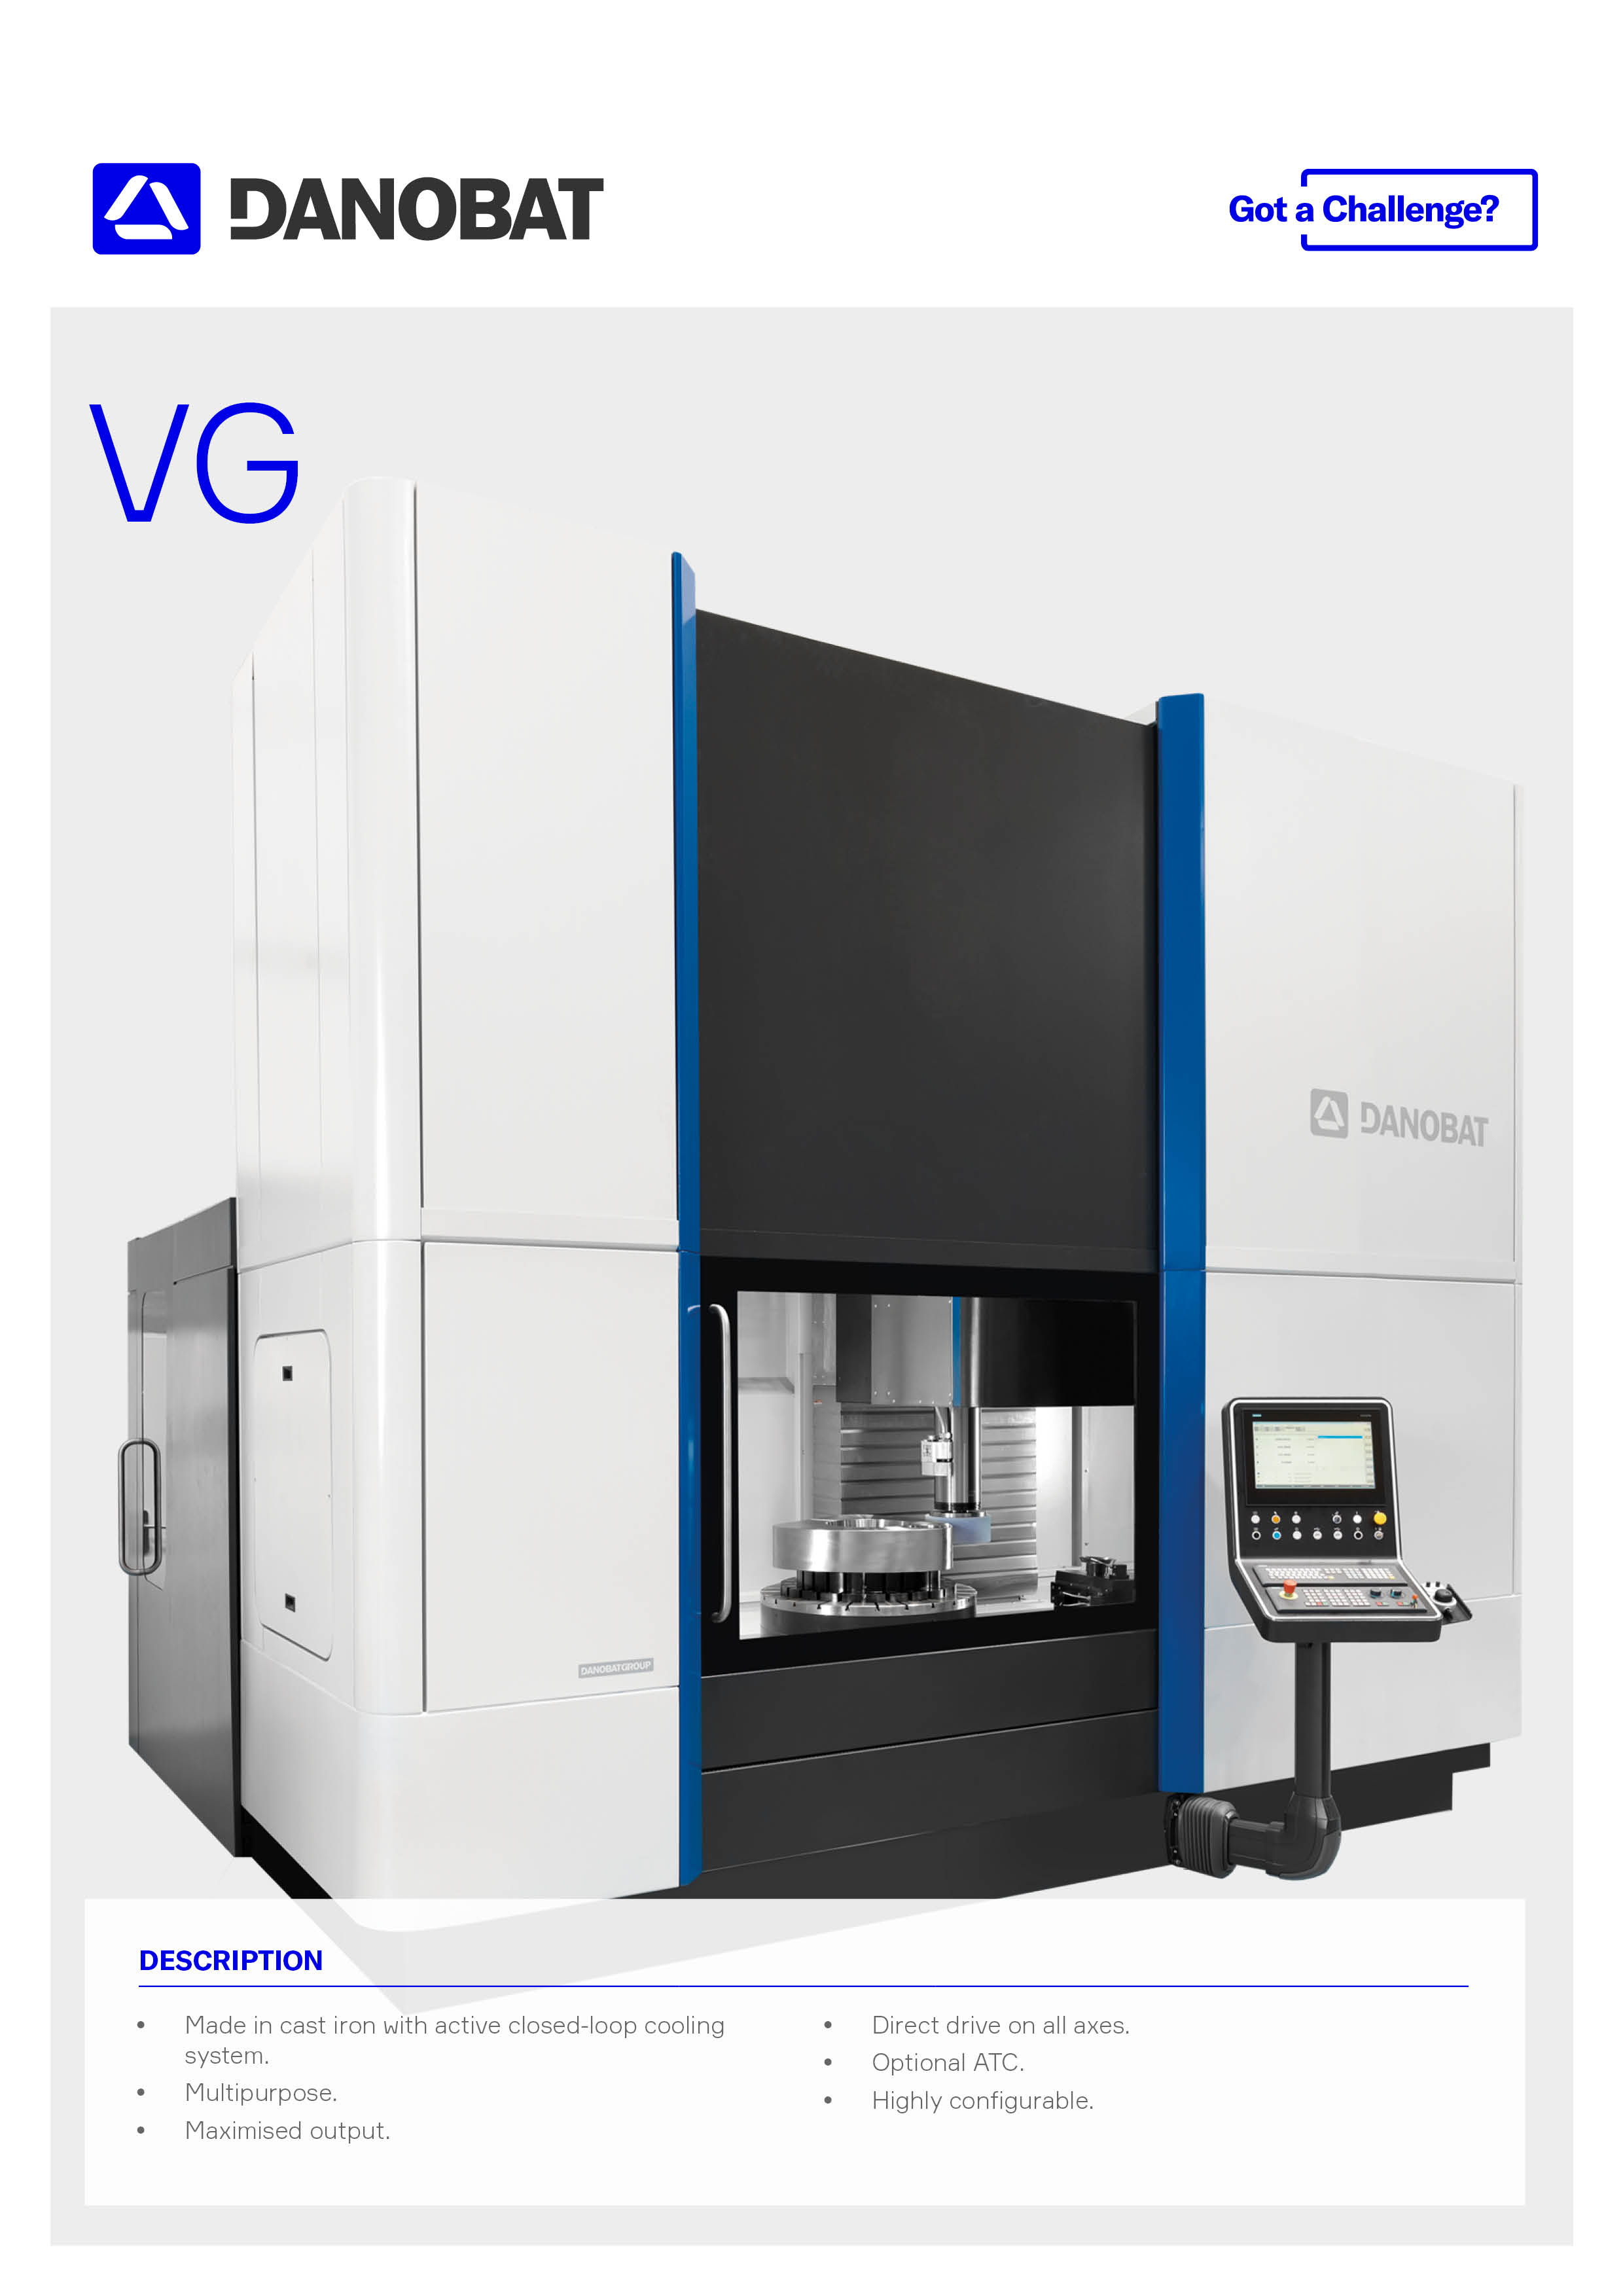 2019_Vertical grinding and measuring solution